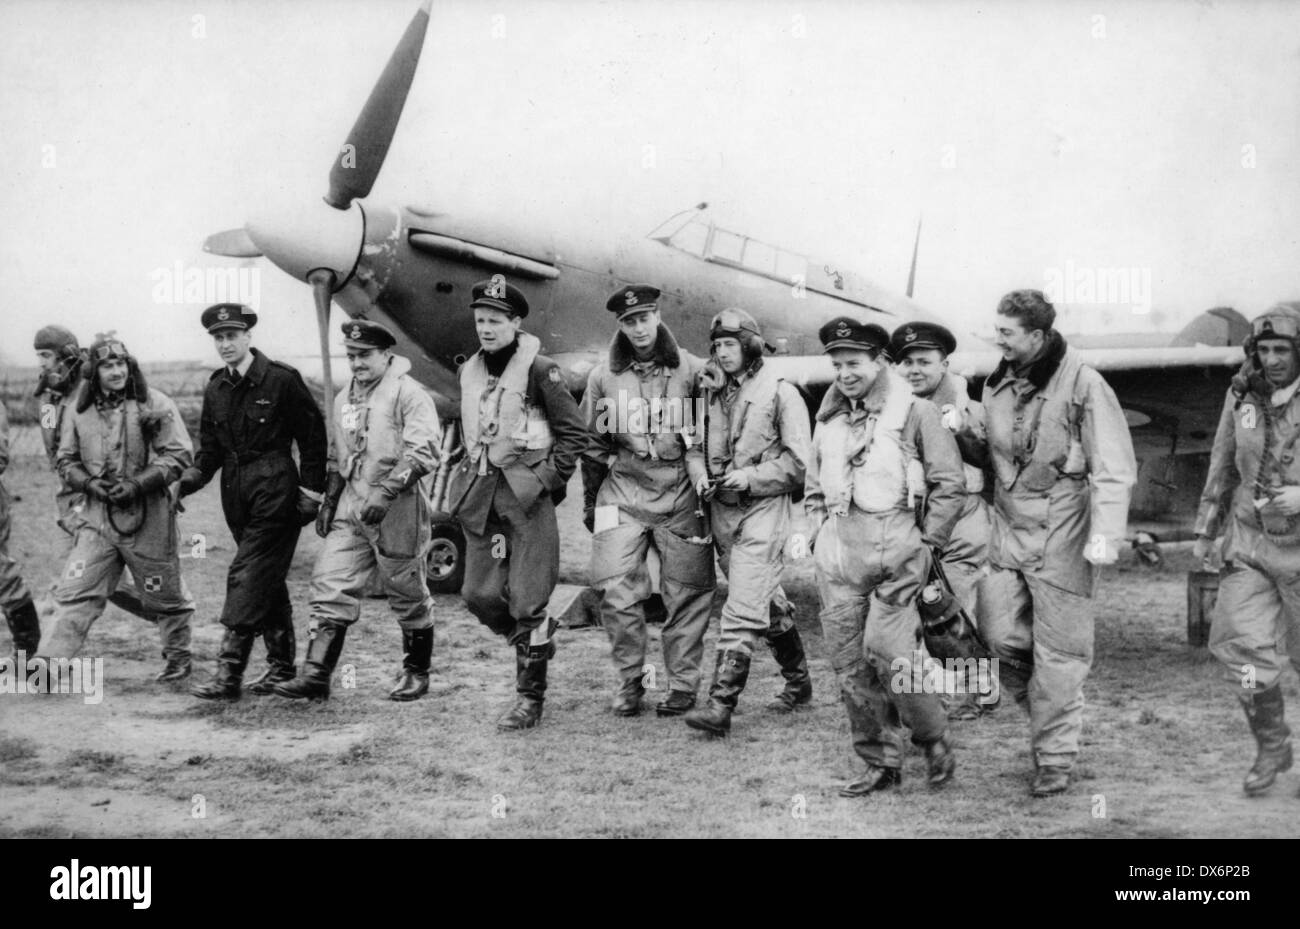 EAGLE SQUADRON - American pilots of 71 (Eagle) Squadron RAF at Kirton-in-Lindsey, Lincolnshire, 17 March 1941, with a Hurricane - Stock Image